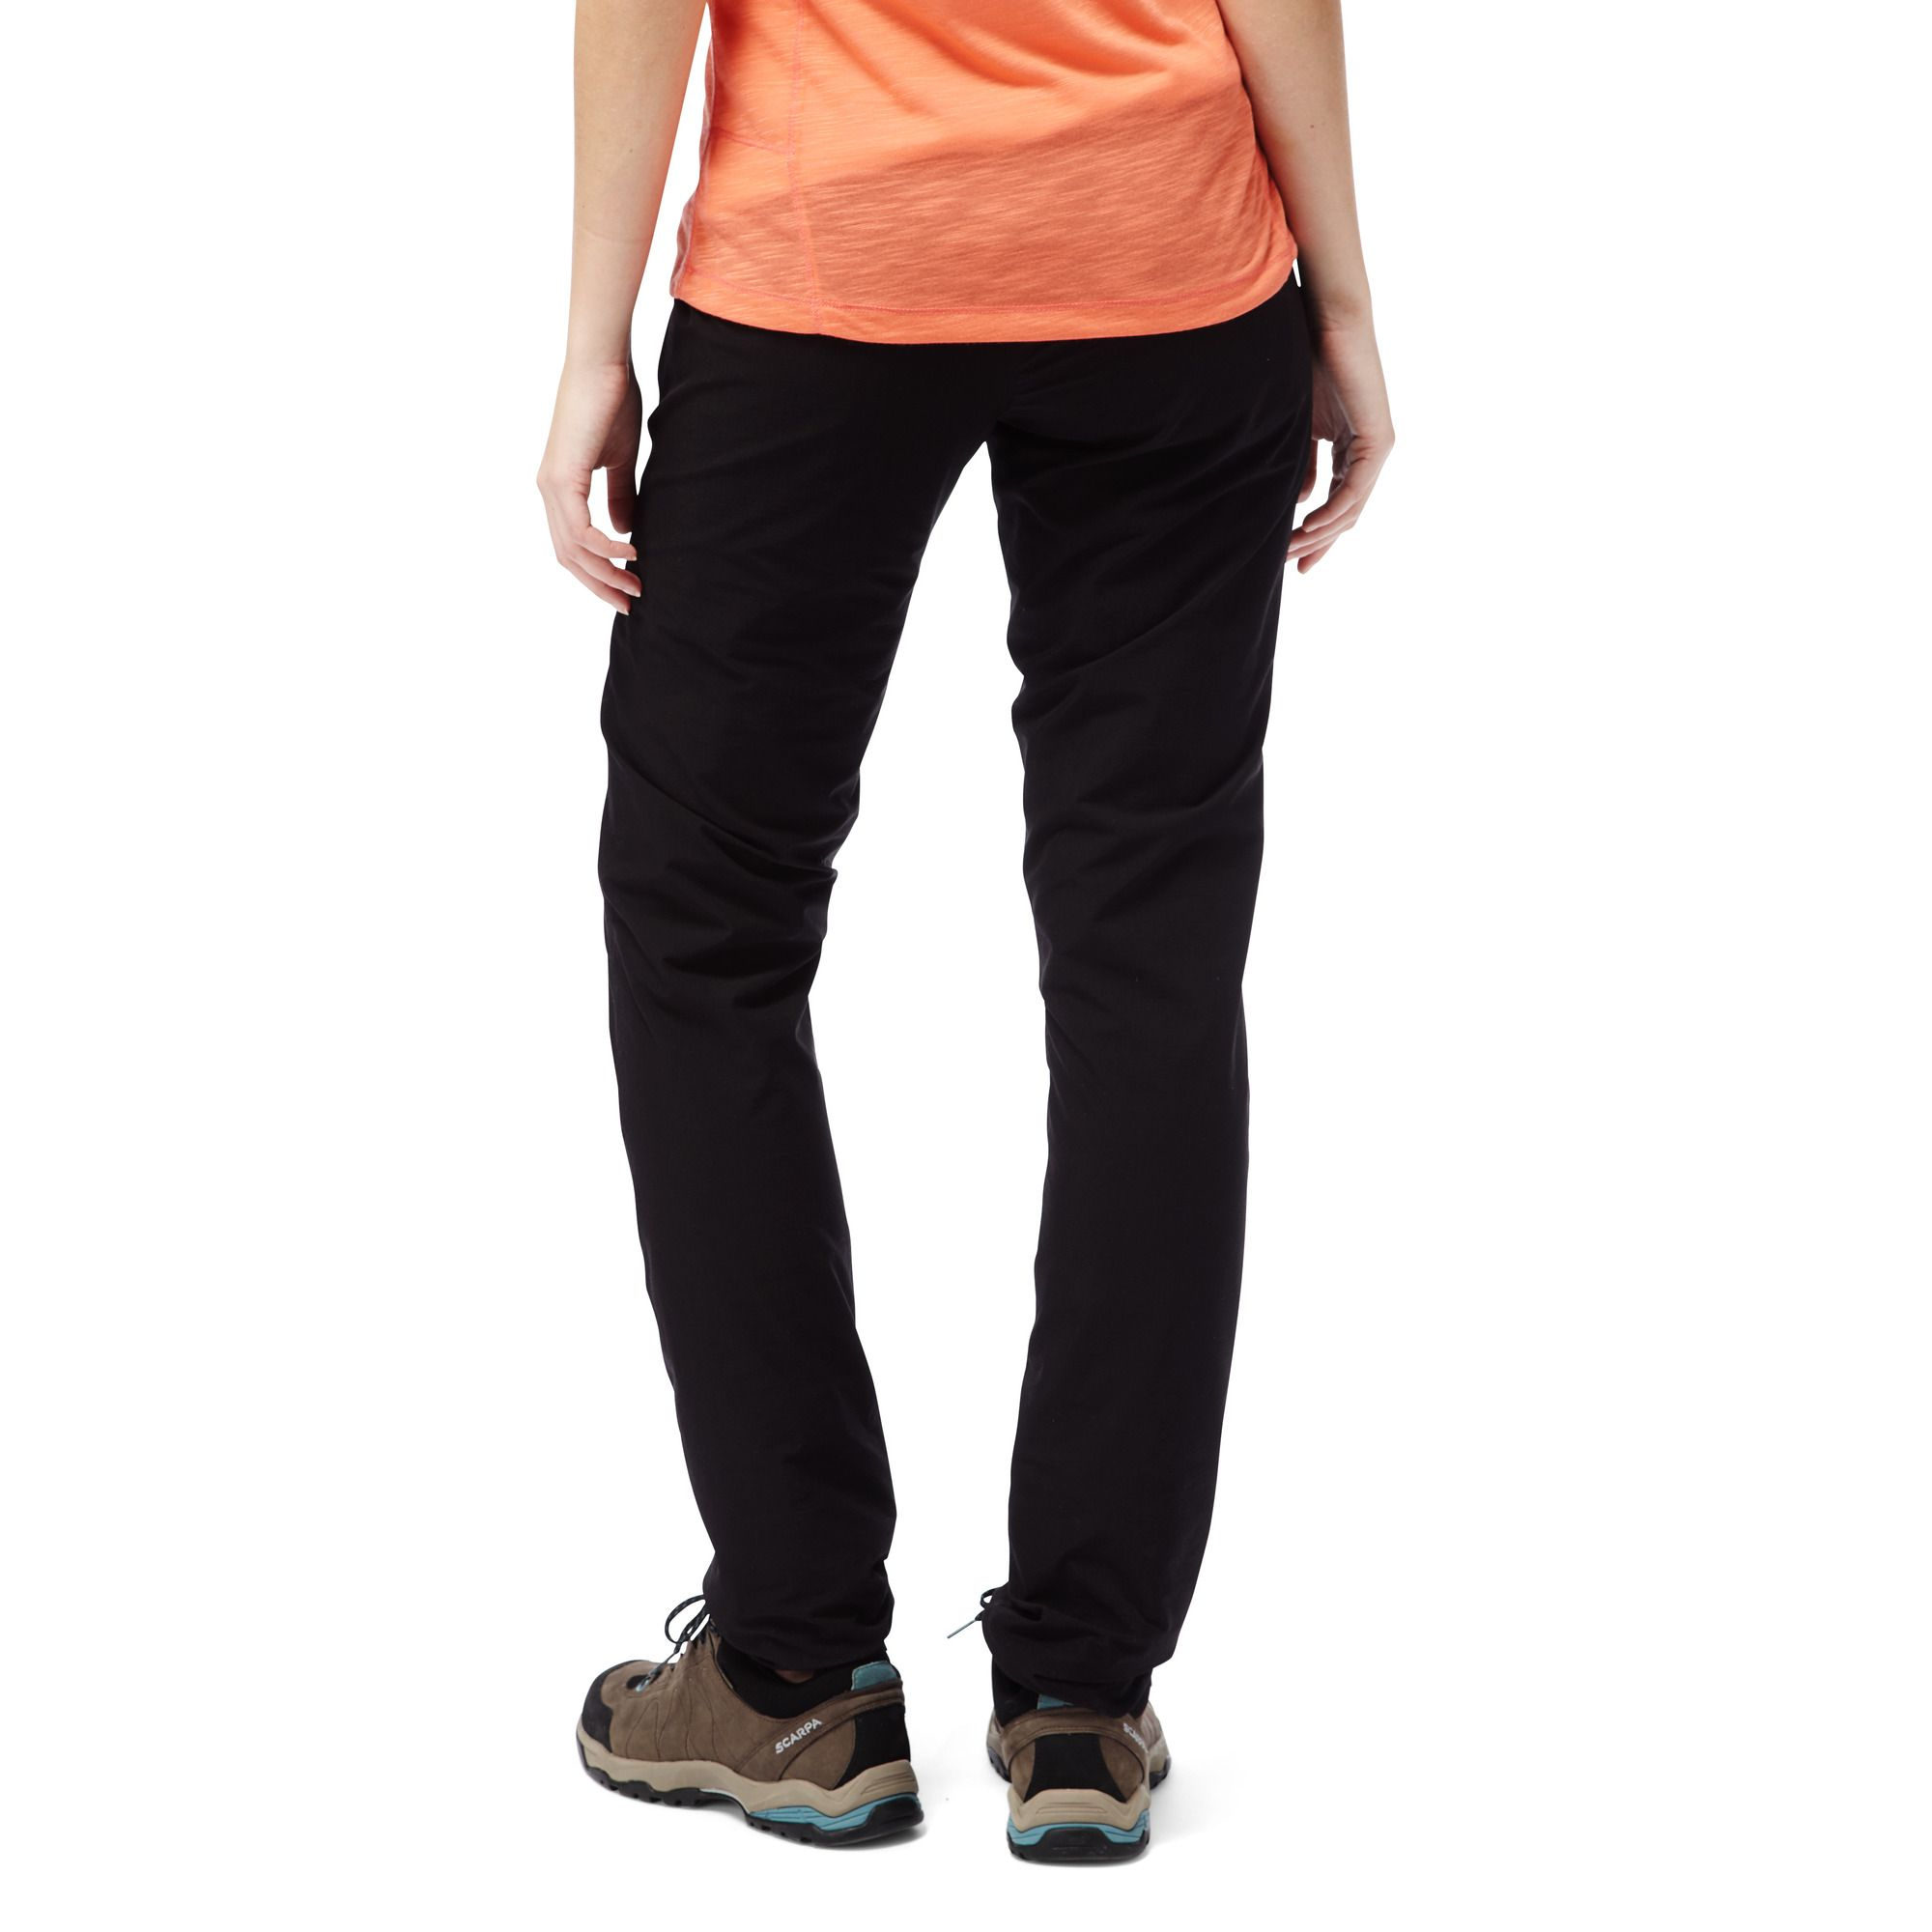 Womens Kiwi Pro Waterproof Trousers